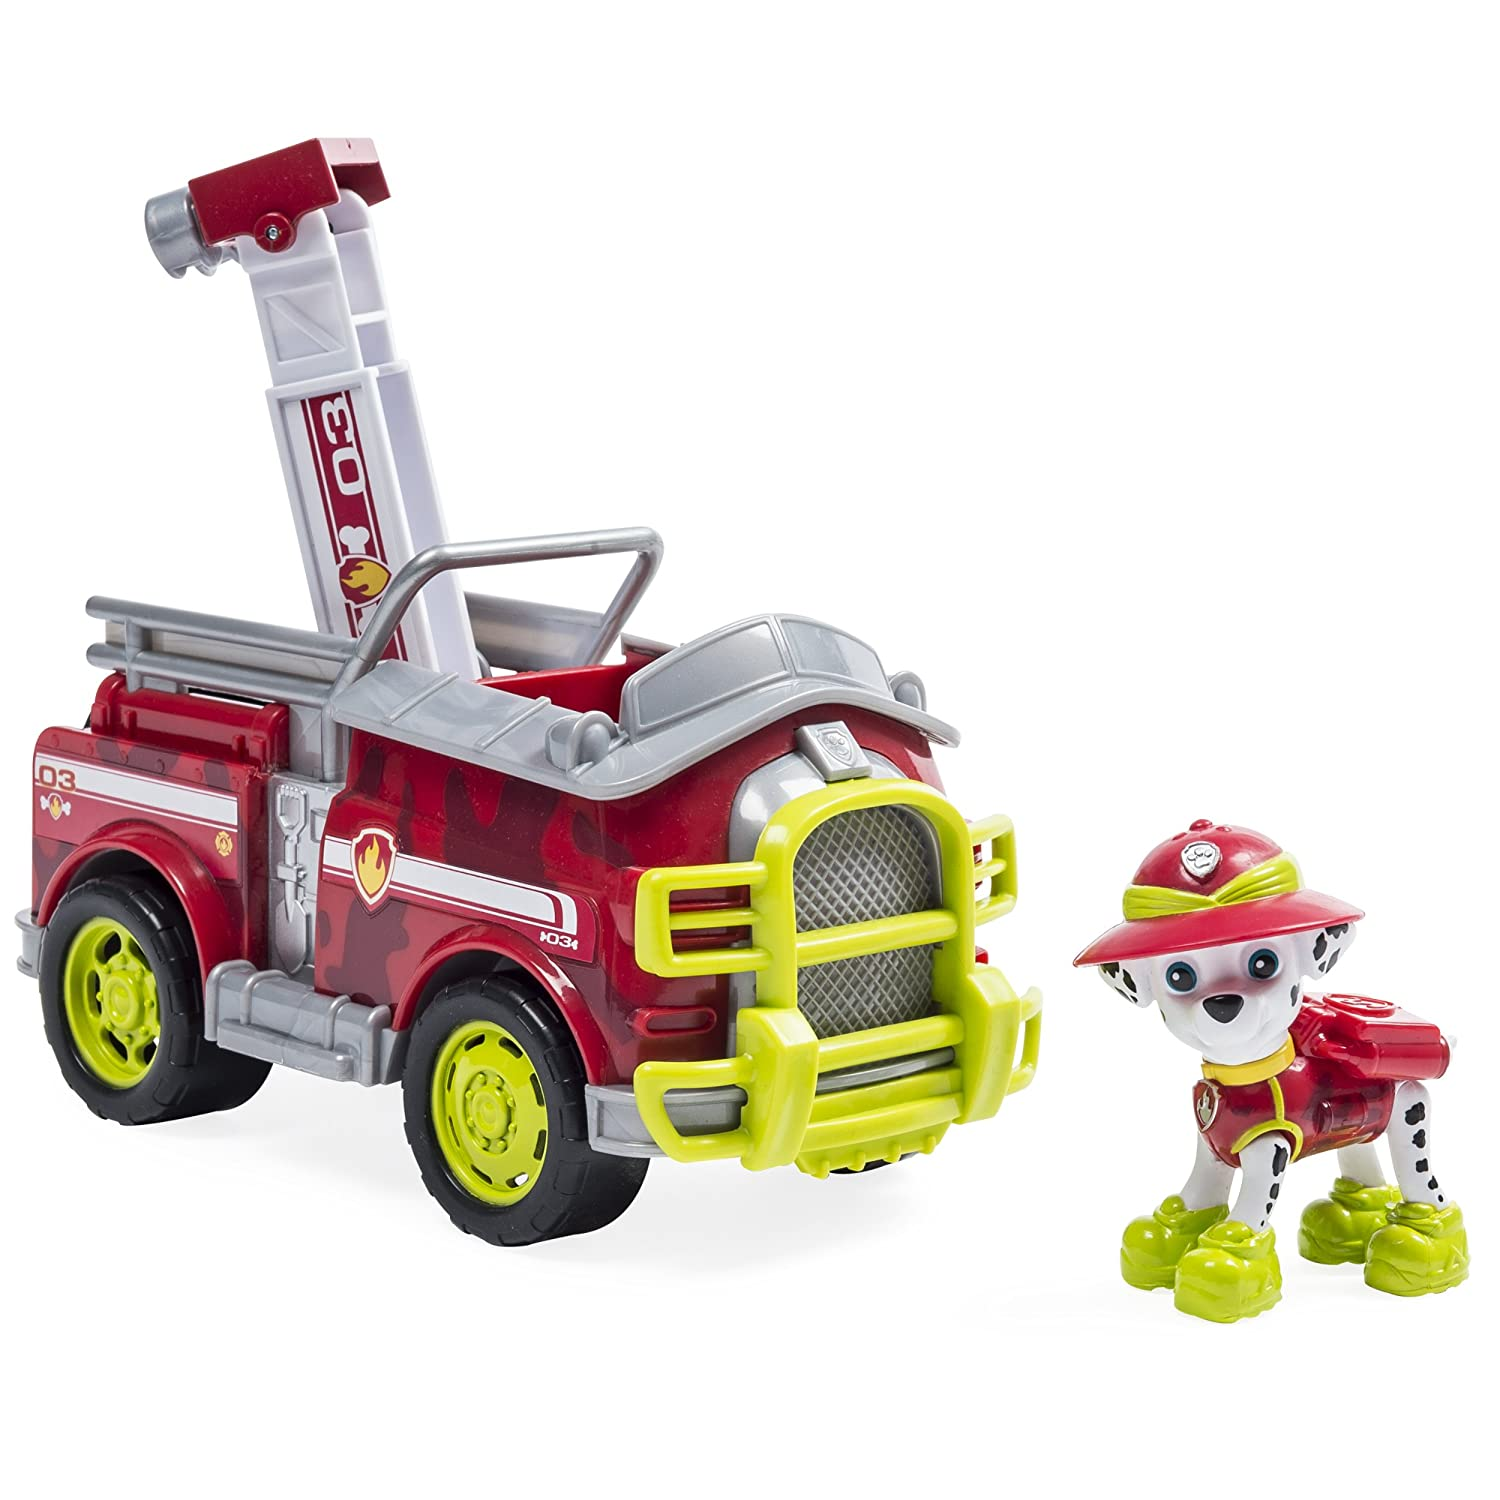 Paw Jungle Patrol - Jungle Rescue - Marshallâs Marshallâs - Jungle Truck B019HP2JCA, auto-connection-shop:35898d51 --- infinnate.ro